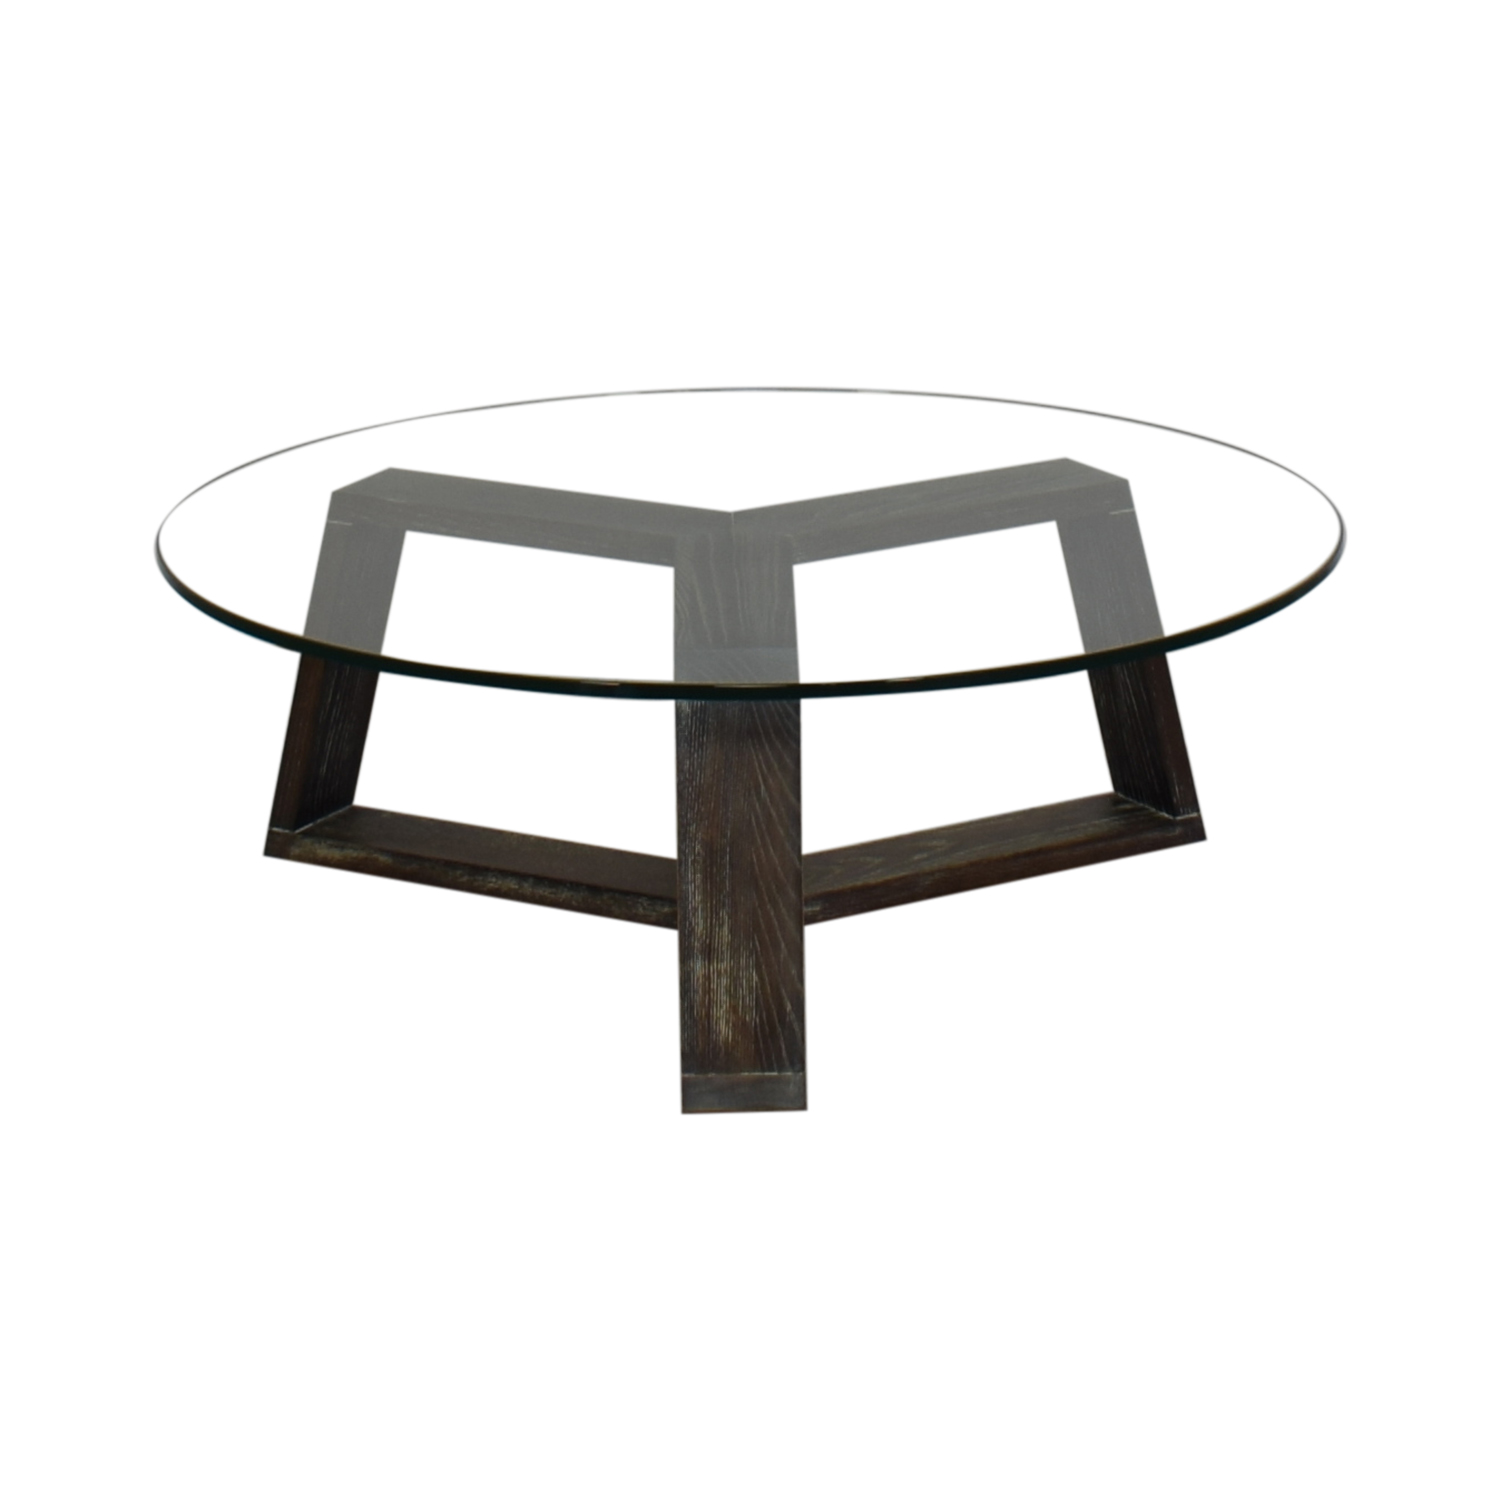 CB2 CB2 Round Glass and Wood Coffee Table Tables